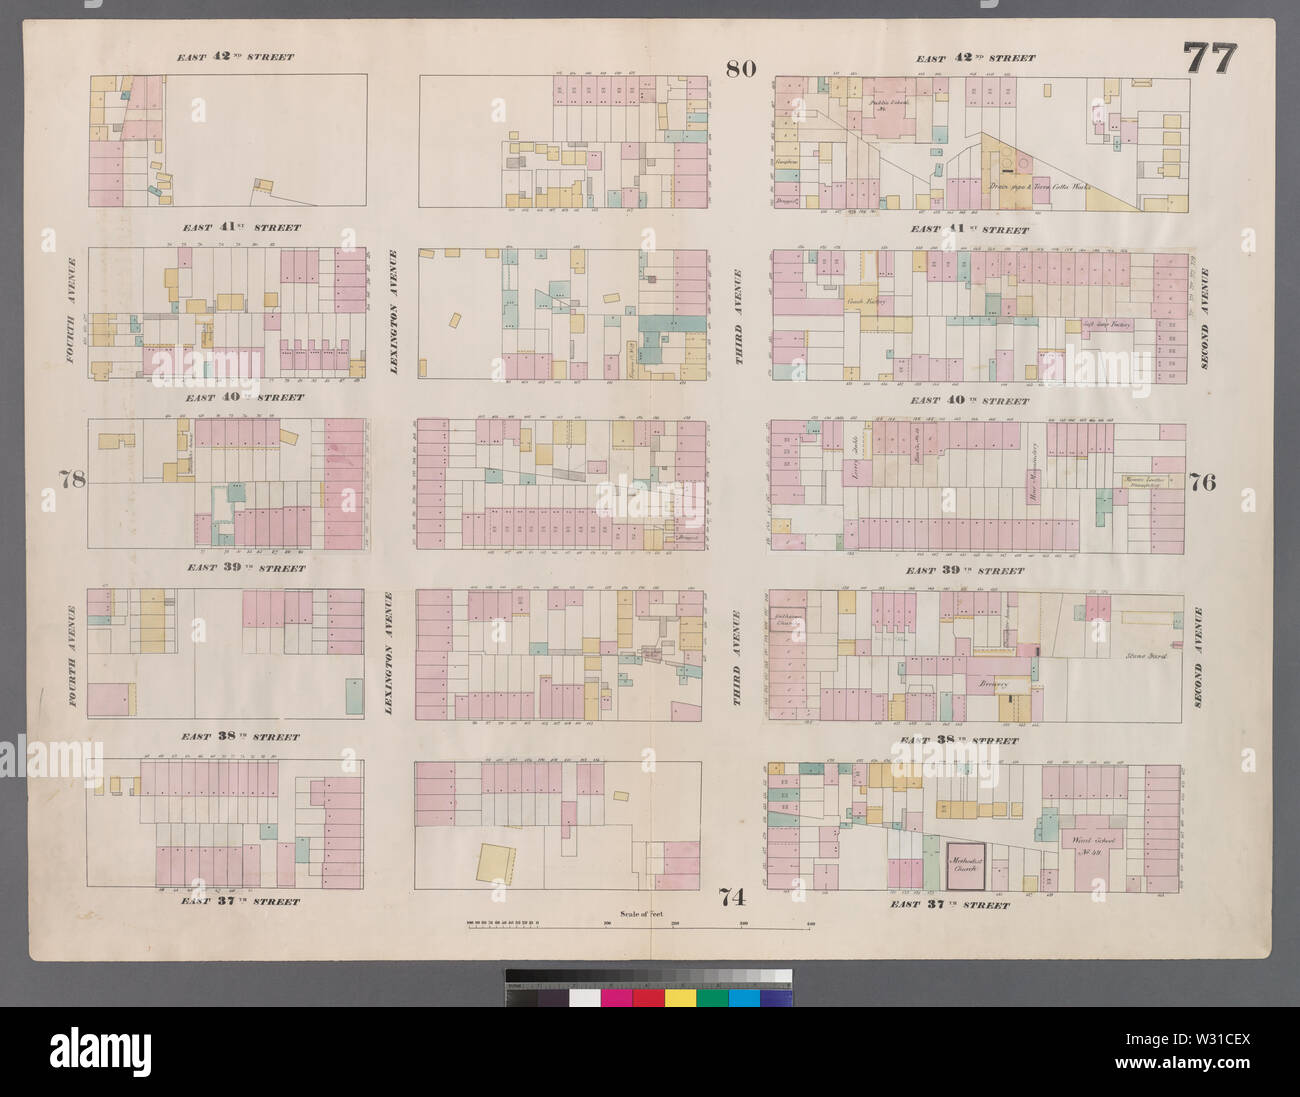 Plate 77 from: Perris, William. Maps of the City of New-York. Volume 5. (New York: Perris & Browne, 1859) - Stock Image